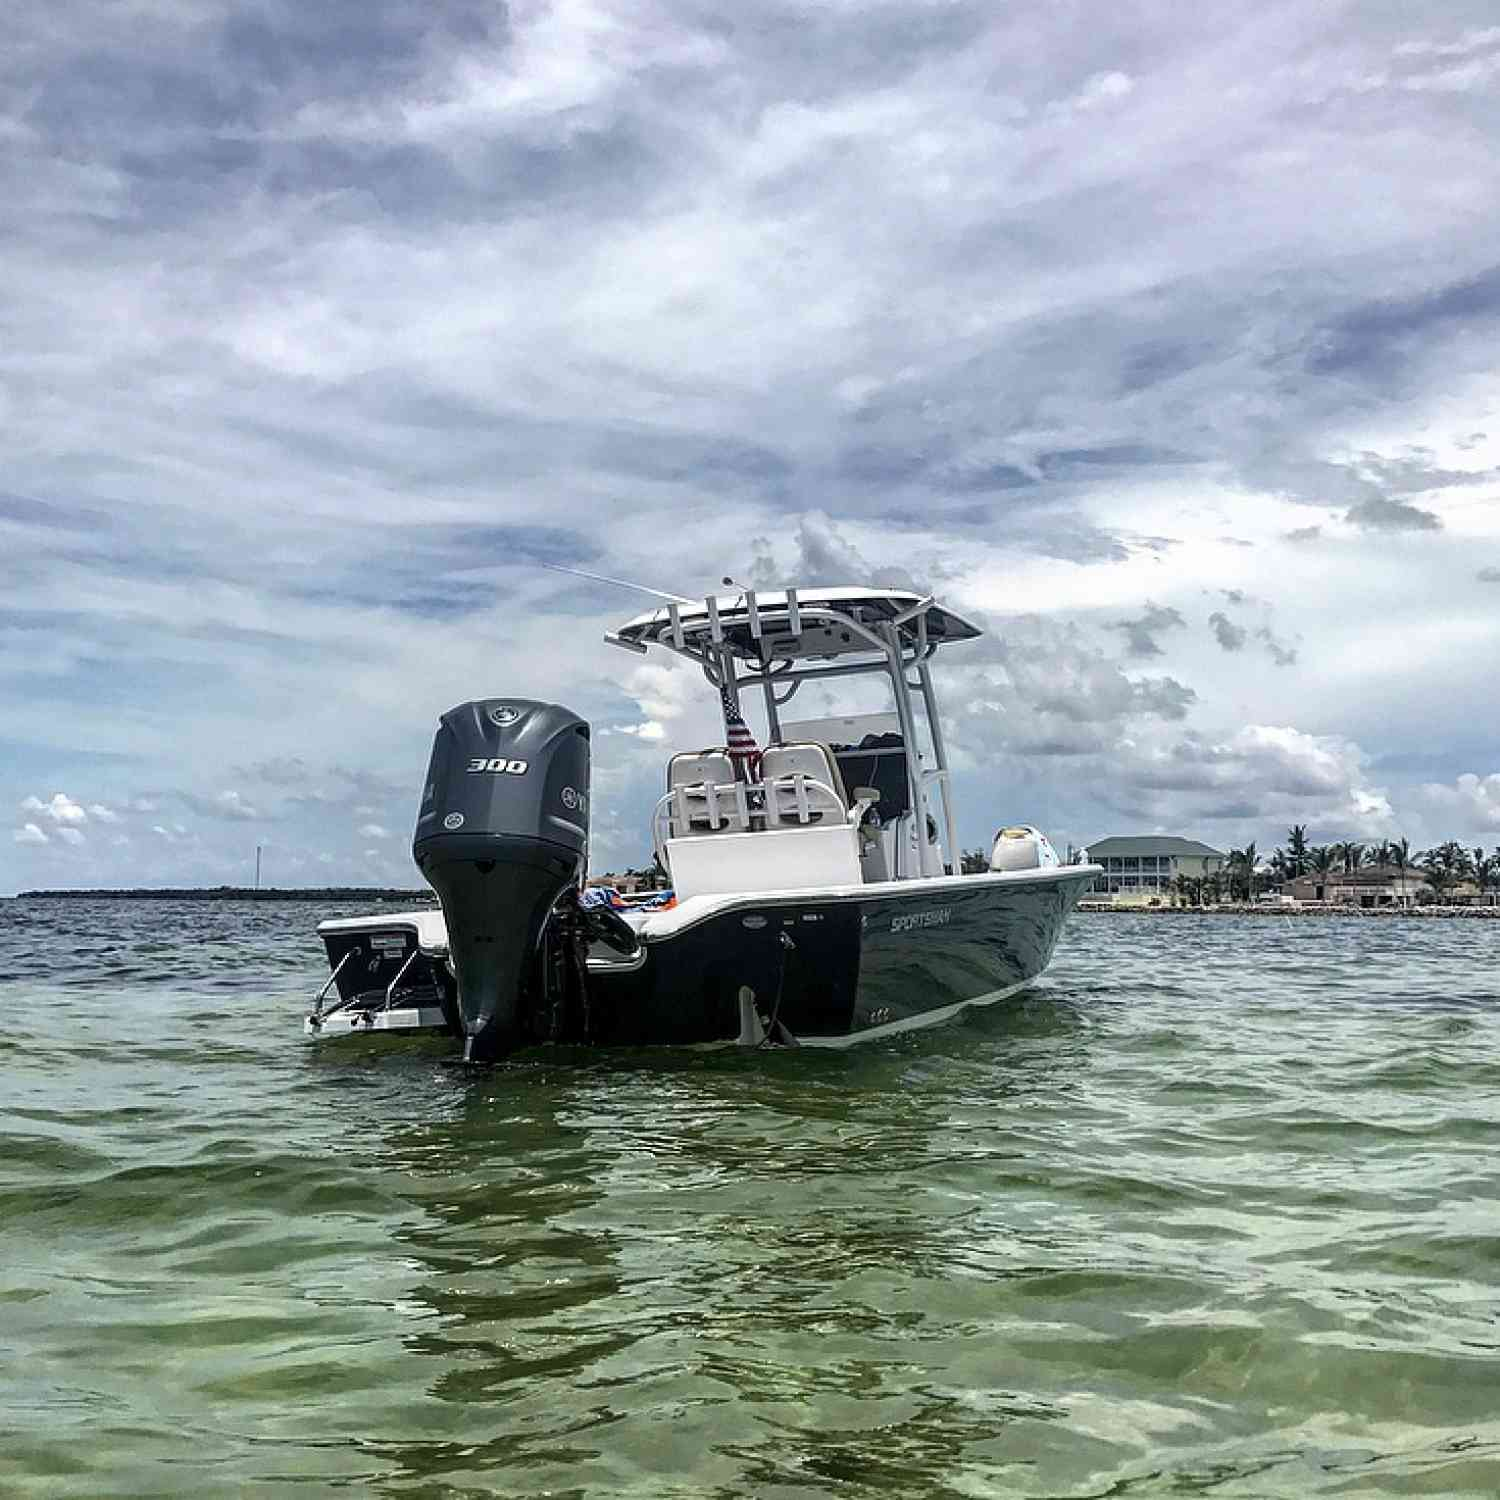 Title: Sand bar sled - On board their Sportsman Masters 267 Bay Boat - Location: Key west Florida. Participating in the Photo Contest #SportsmanOctober2018